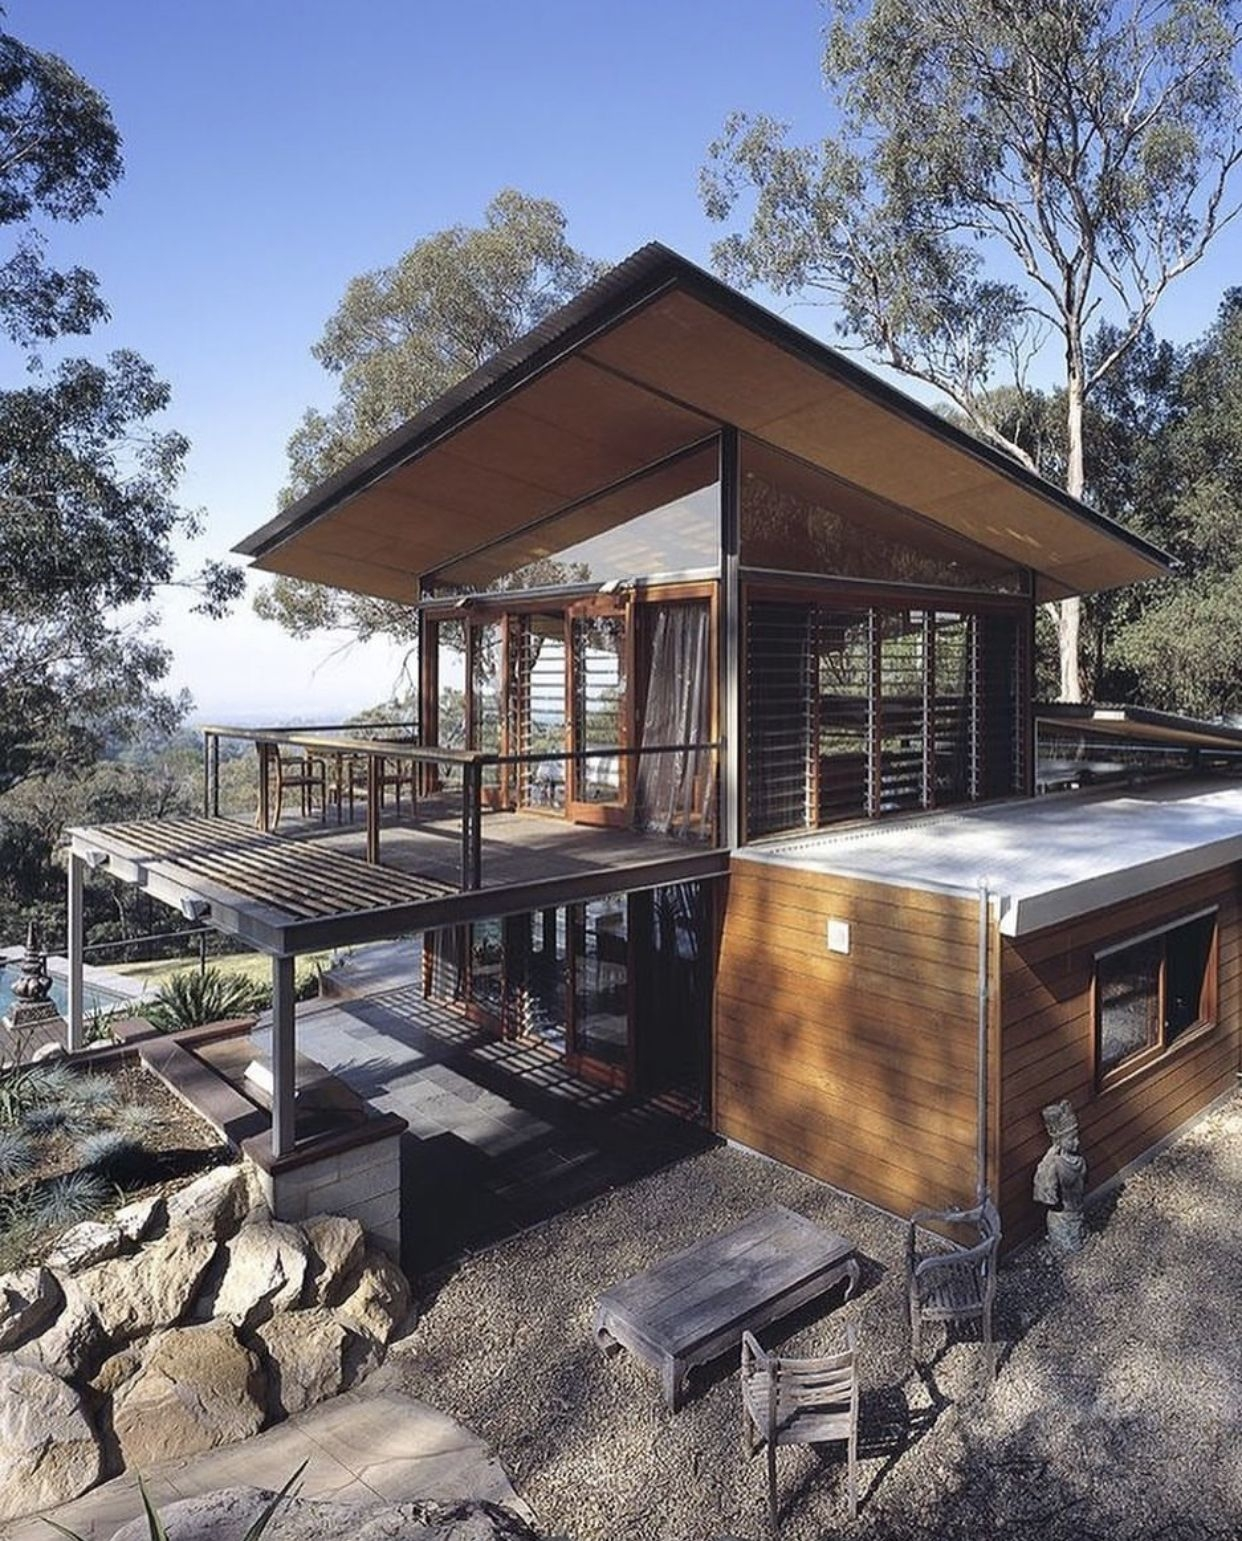 Delightful Small Modern Mountain Homes On Magnificent Pin by Condor Chileno On Containers Plus On Small Modern Mountain Homes